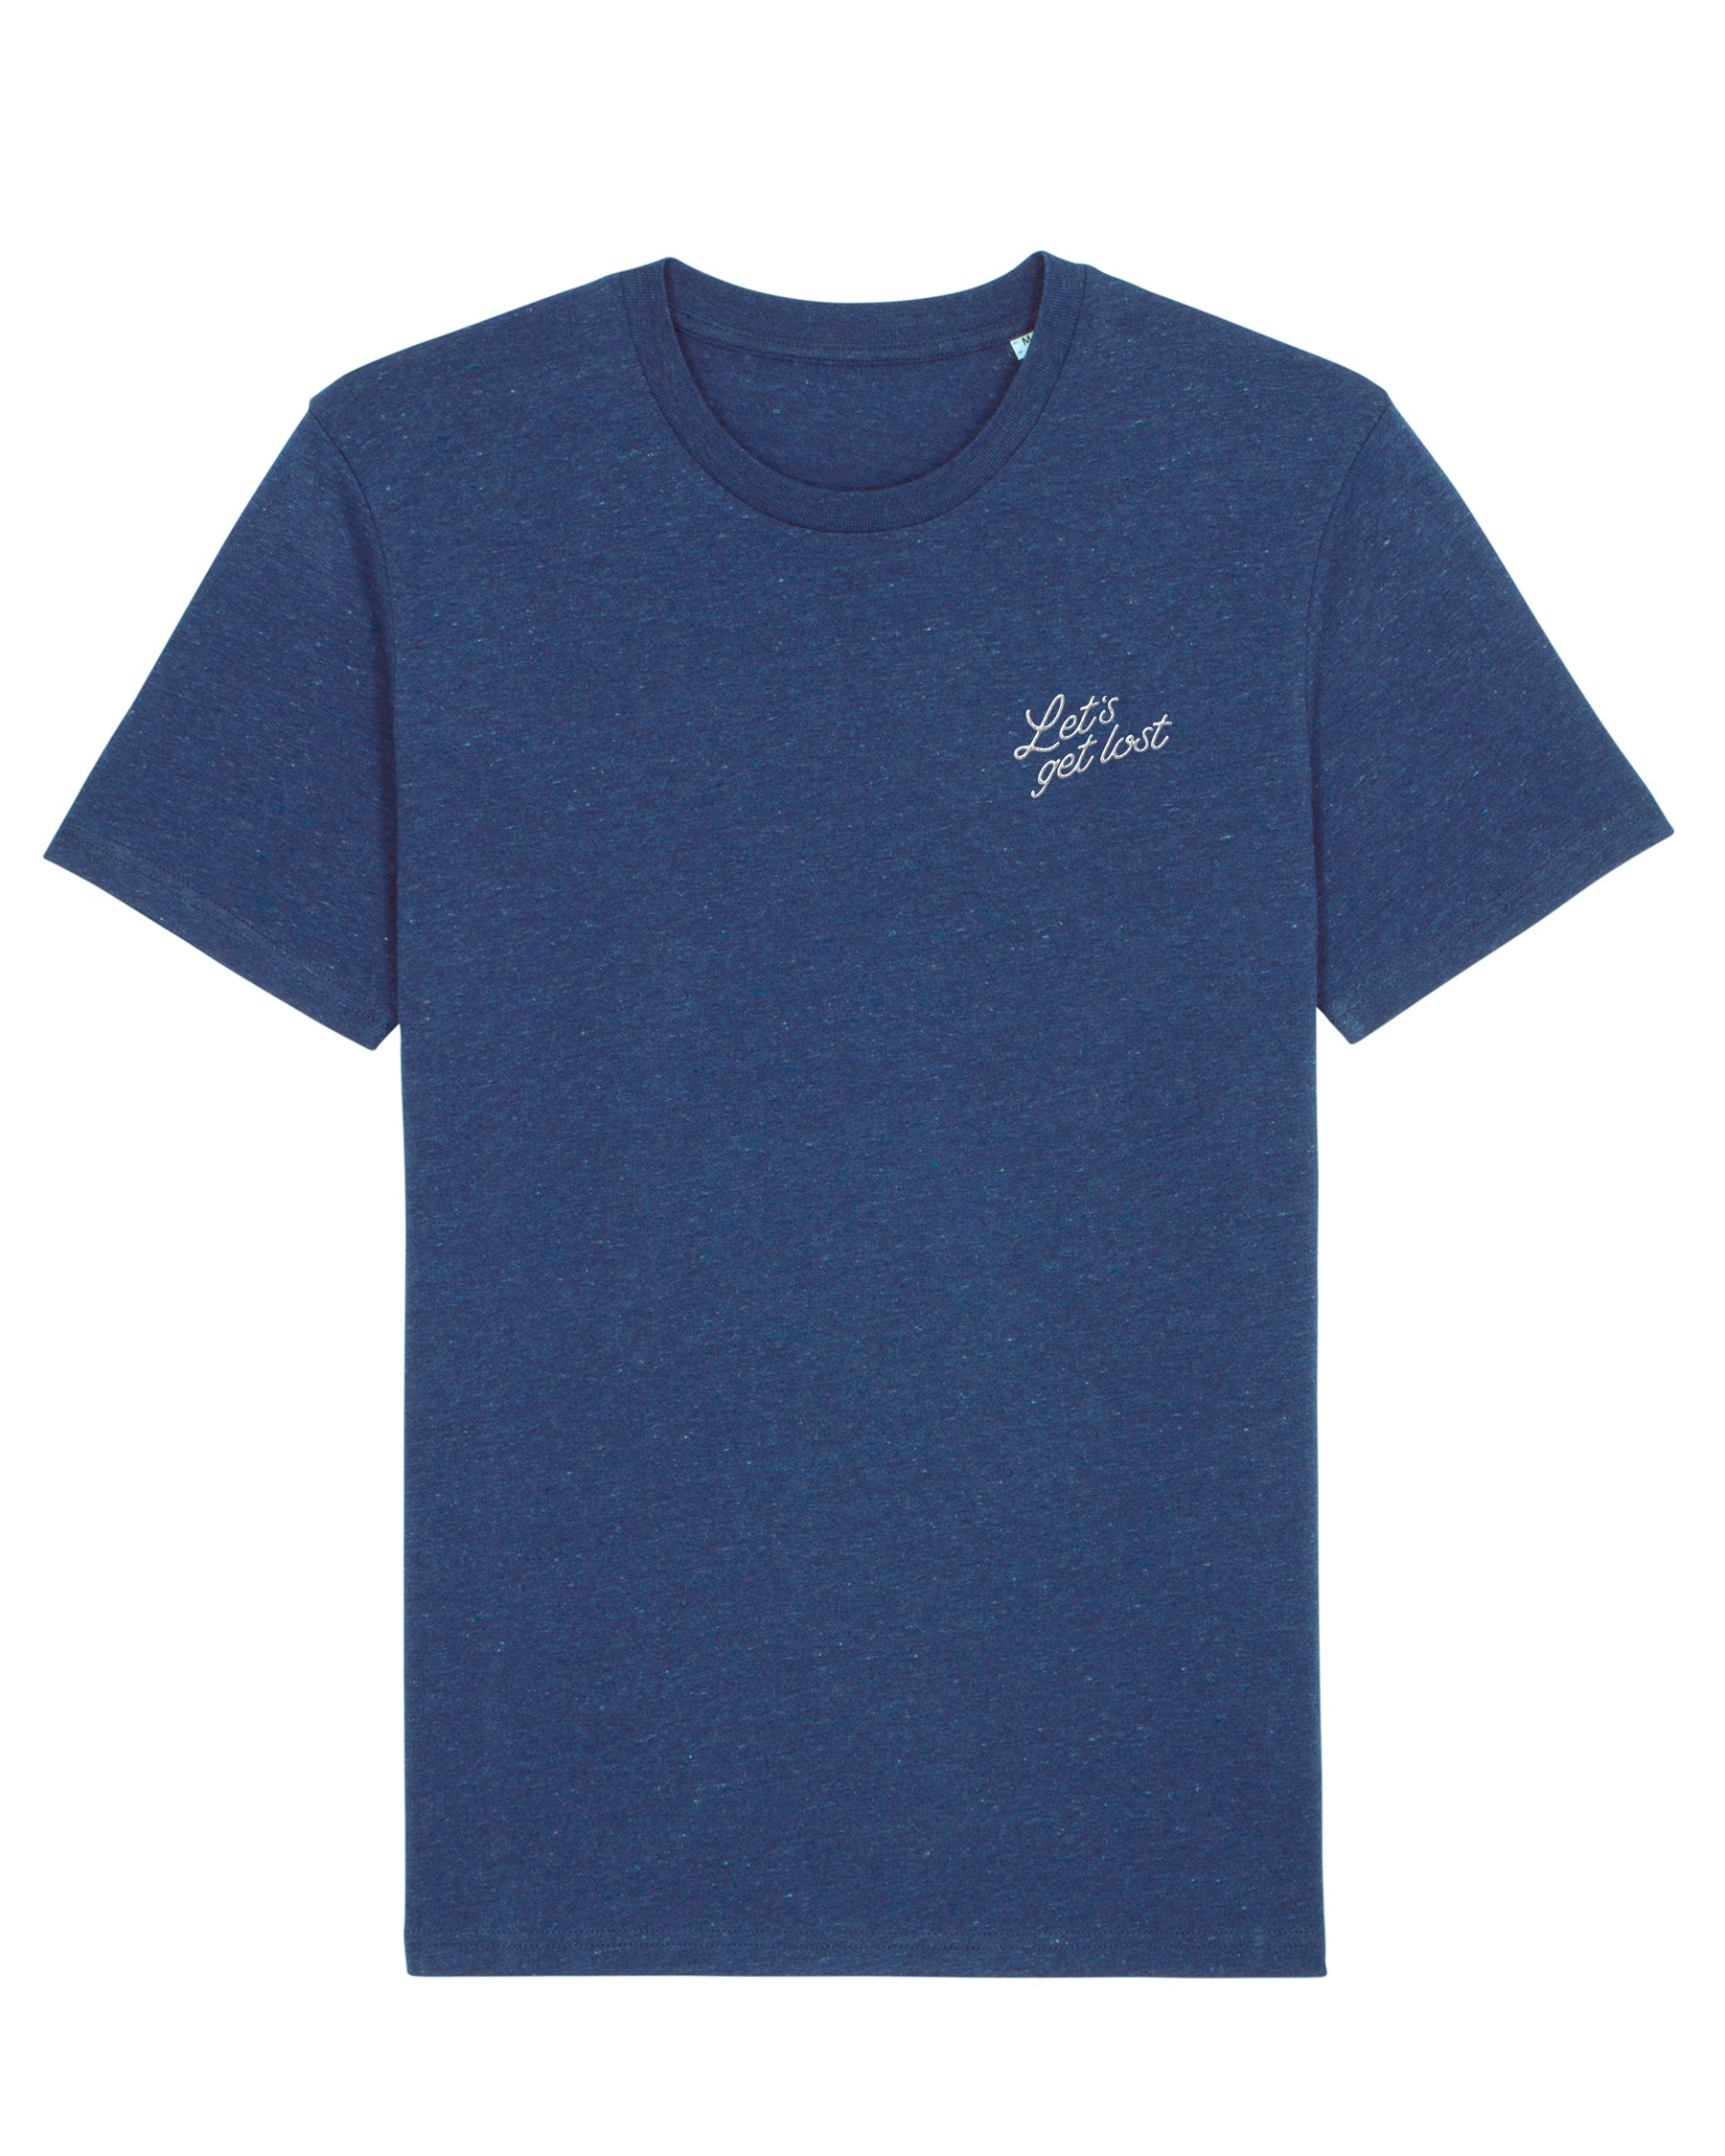 Let's get lost cycling T-shirt (mid blue)